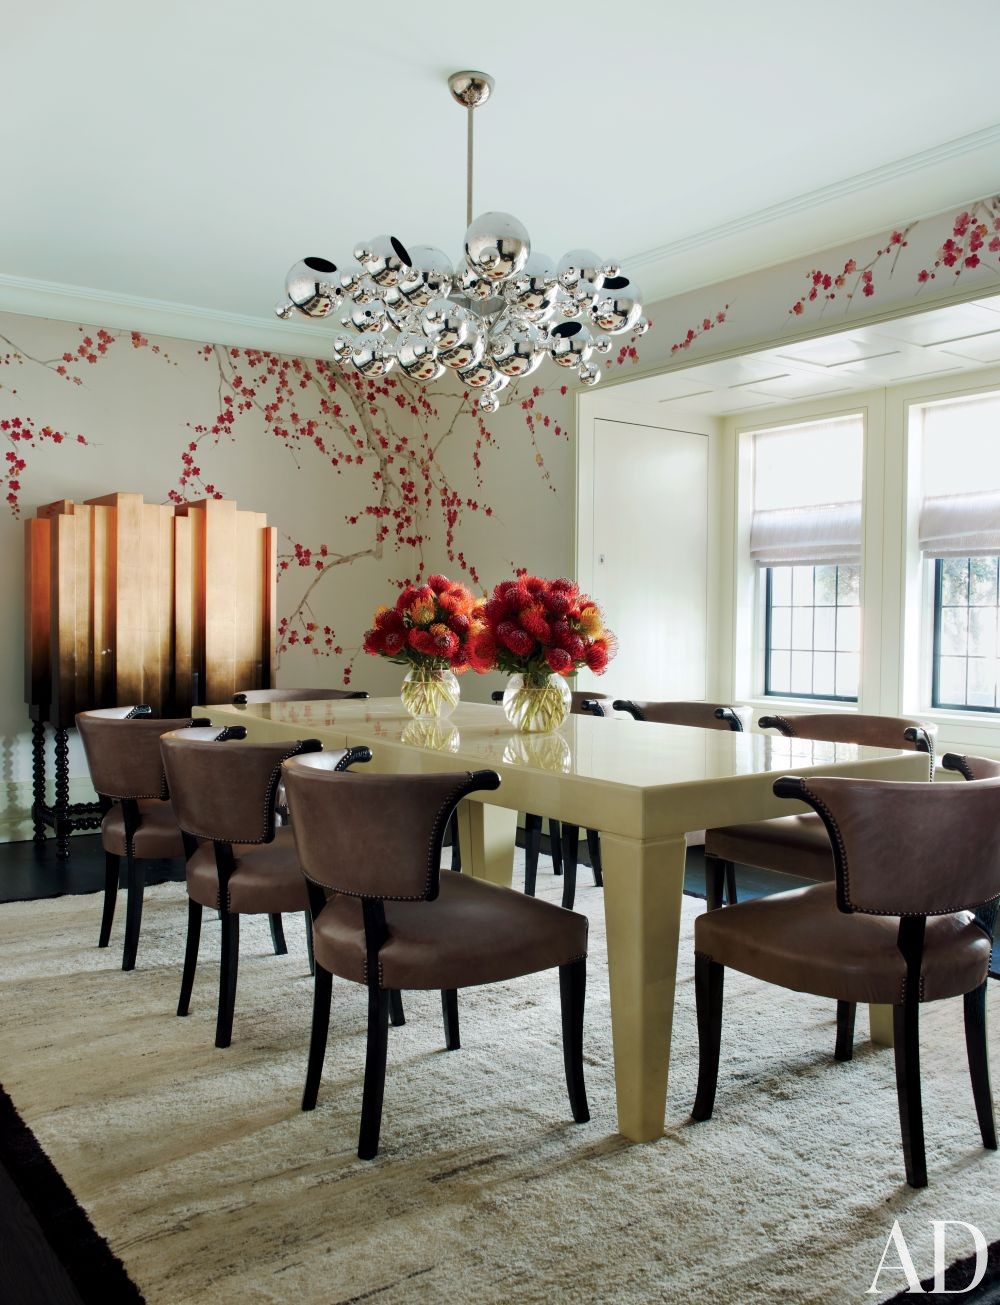 Contemporary Dining Room by Rafael de Cárdenas Ltd./Architecture at Large in London, England